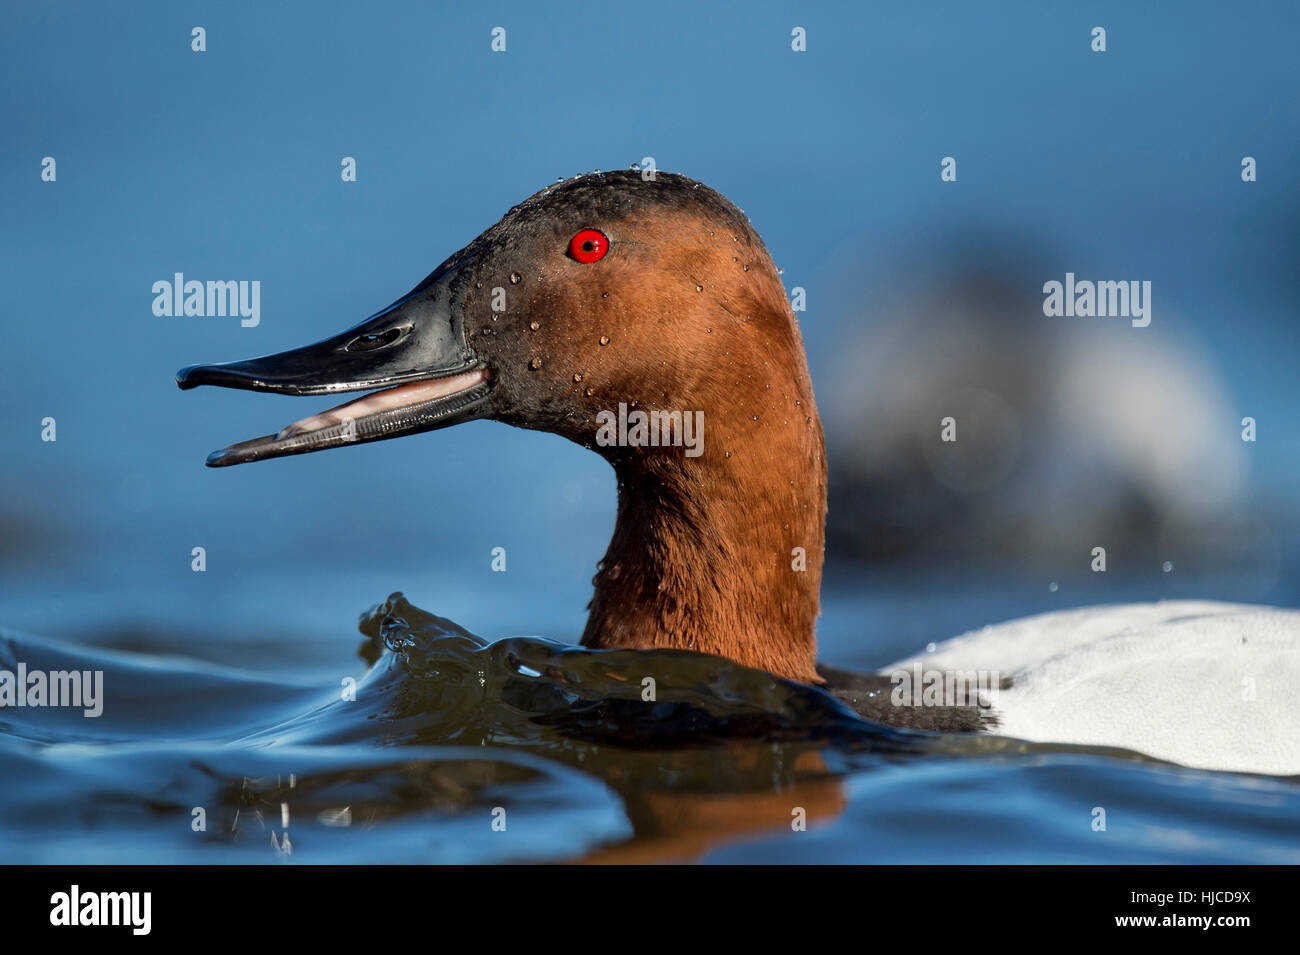 A male Canvasback duck opens its beak as it swims through the blue water. - Stock Image